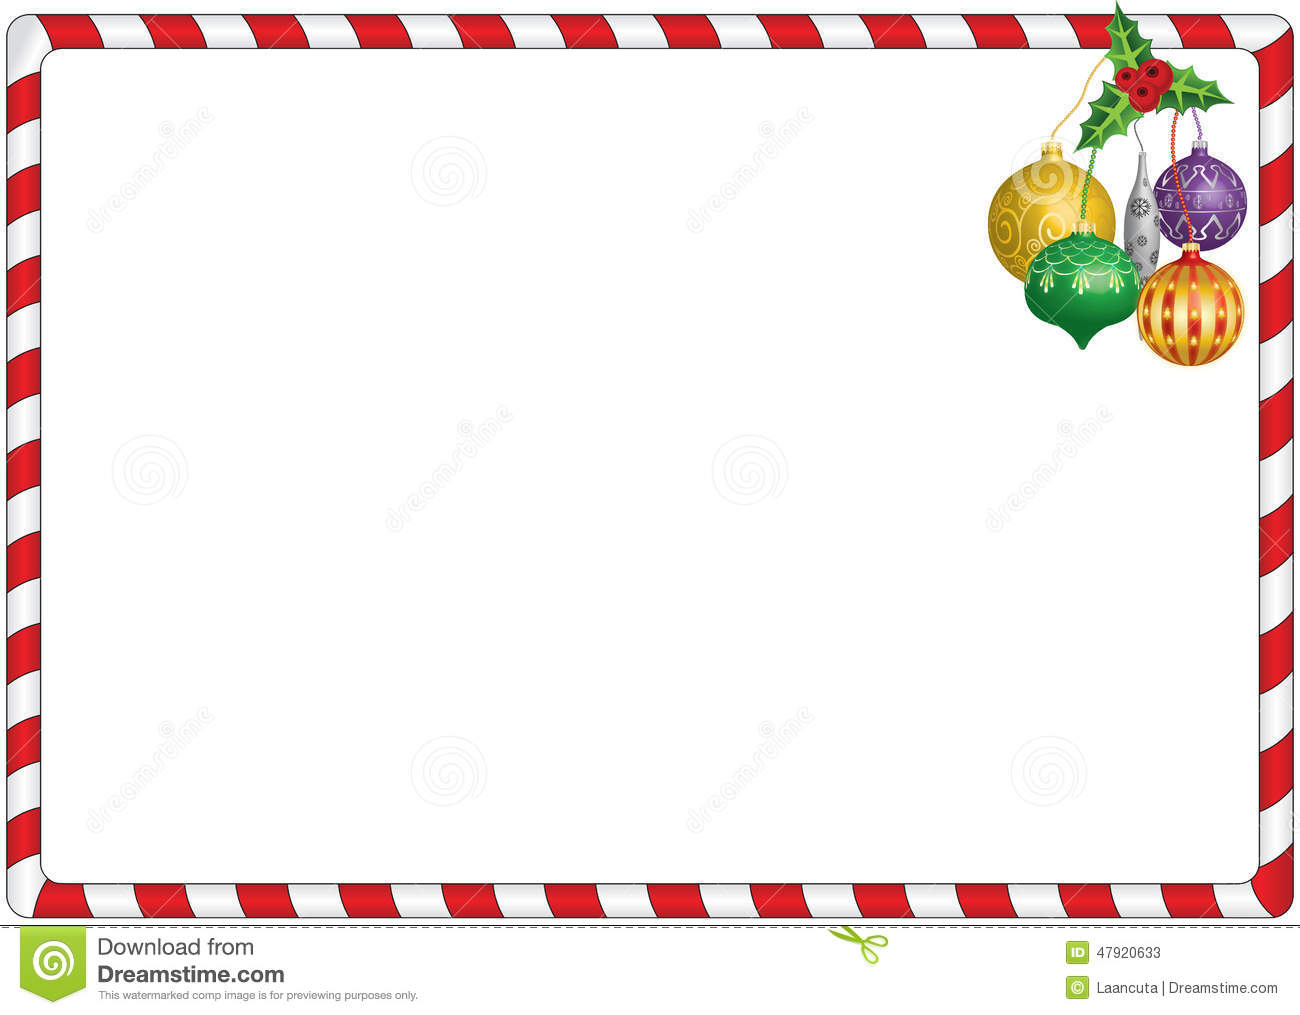 Simple christmas red and white candy border with hanging decorations.